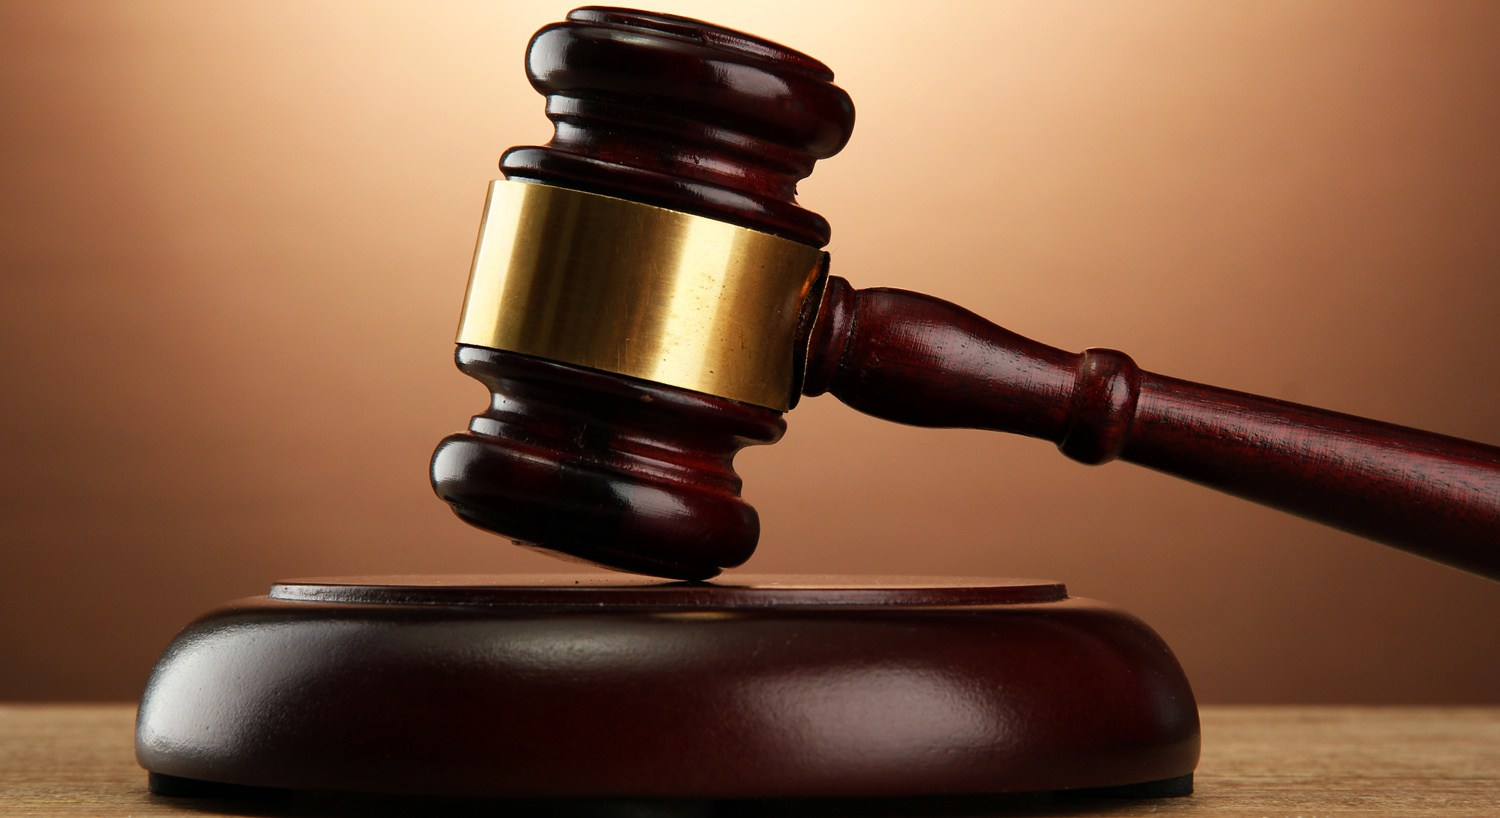 Inheritance fraud: Prince bags 1 year imprisonment for forgery